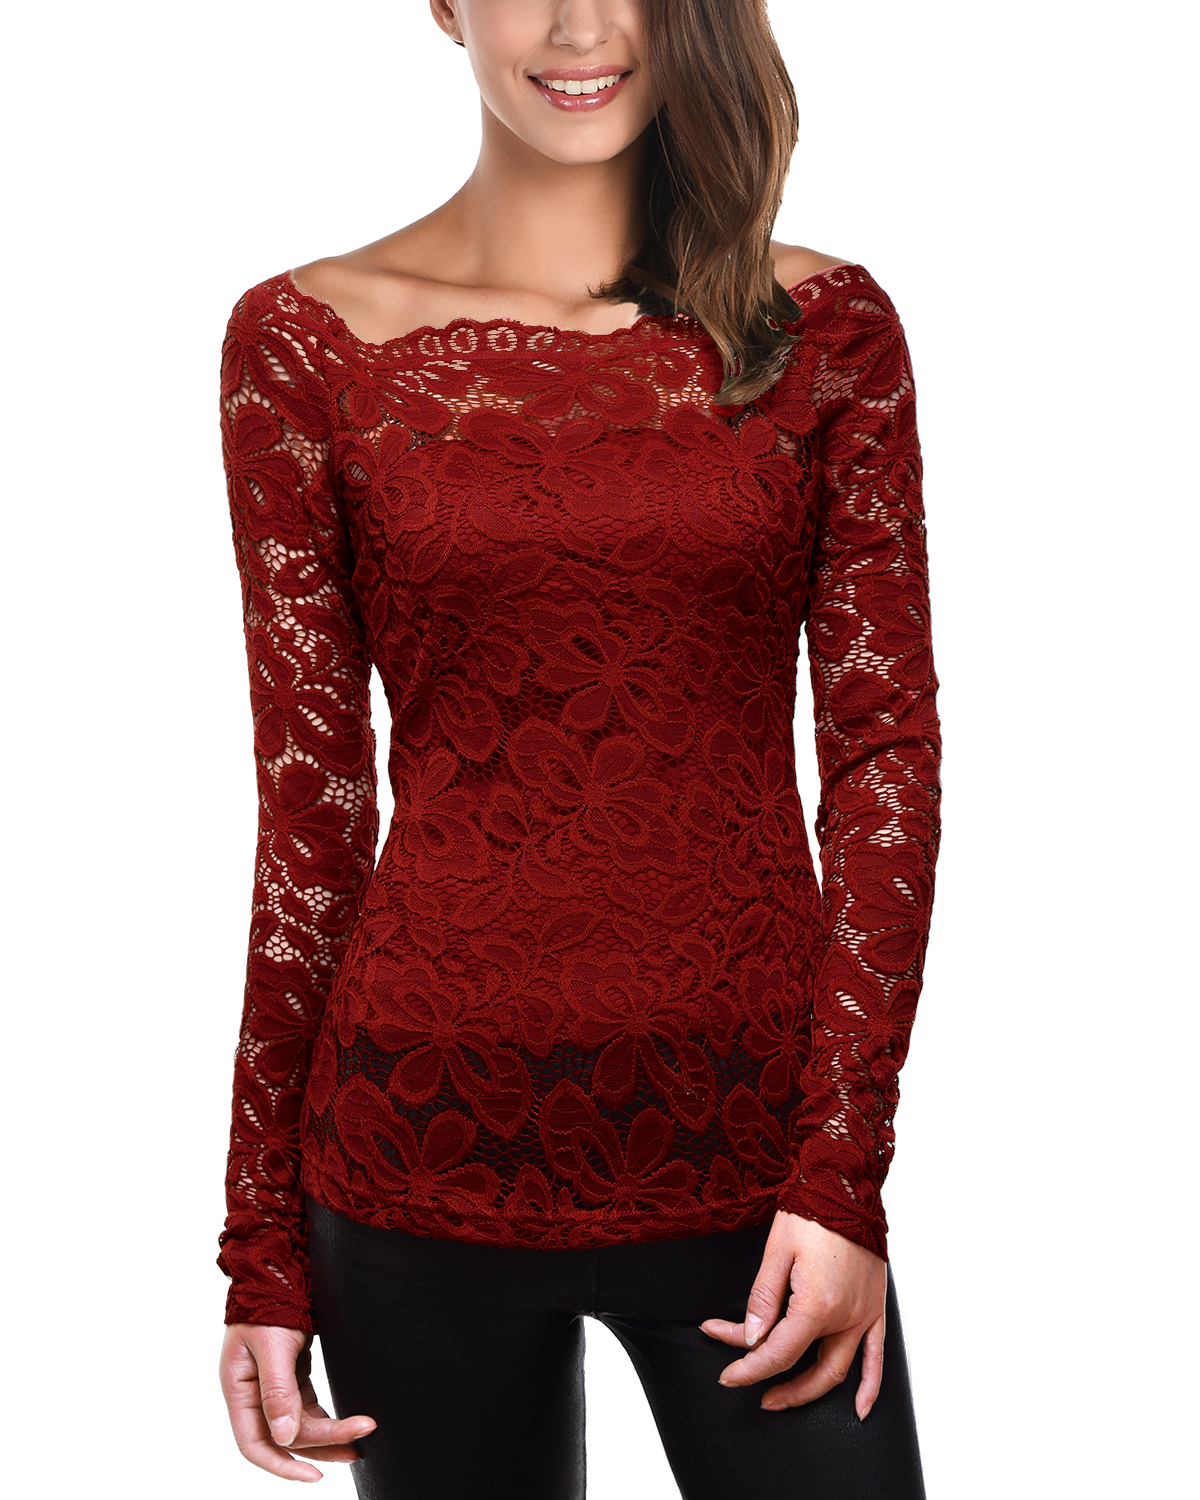 A complete assortment of Women's Long Sleeve Tops is in stock at tennesseemyblogw0.cf! Shipping is free on orders over $99!